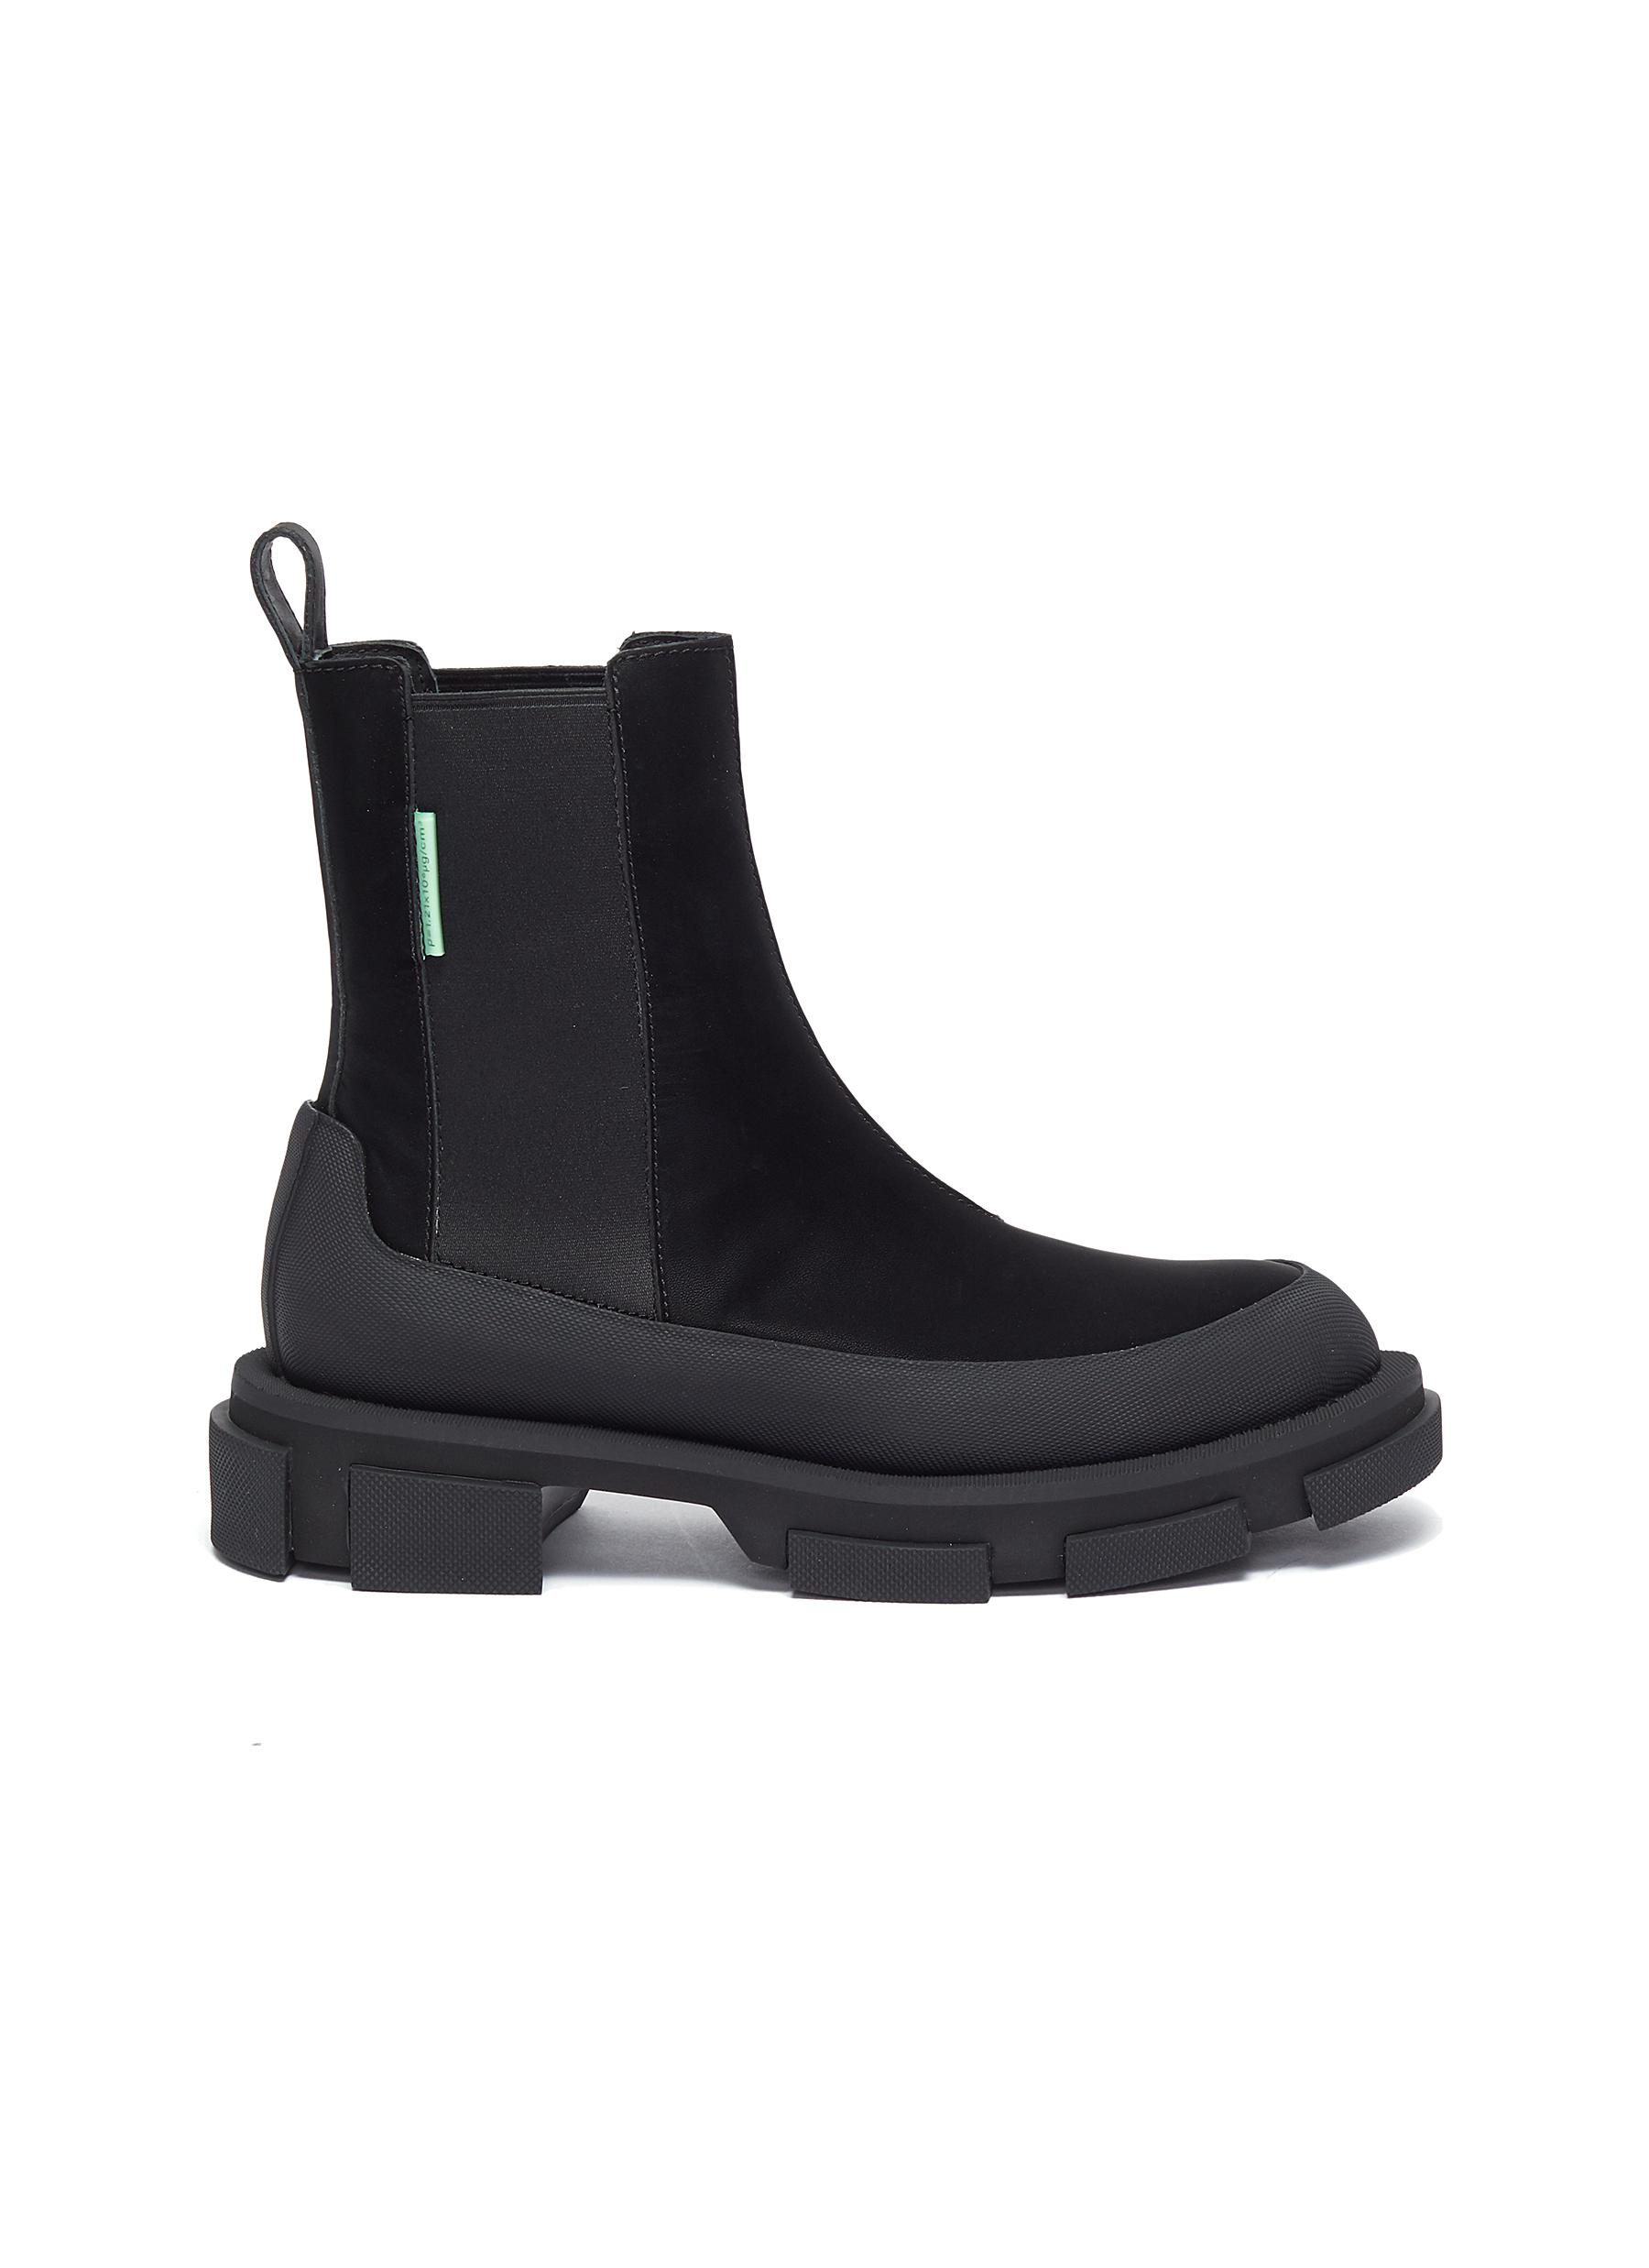 Gao' chunky sole leather chelsea boots